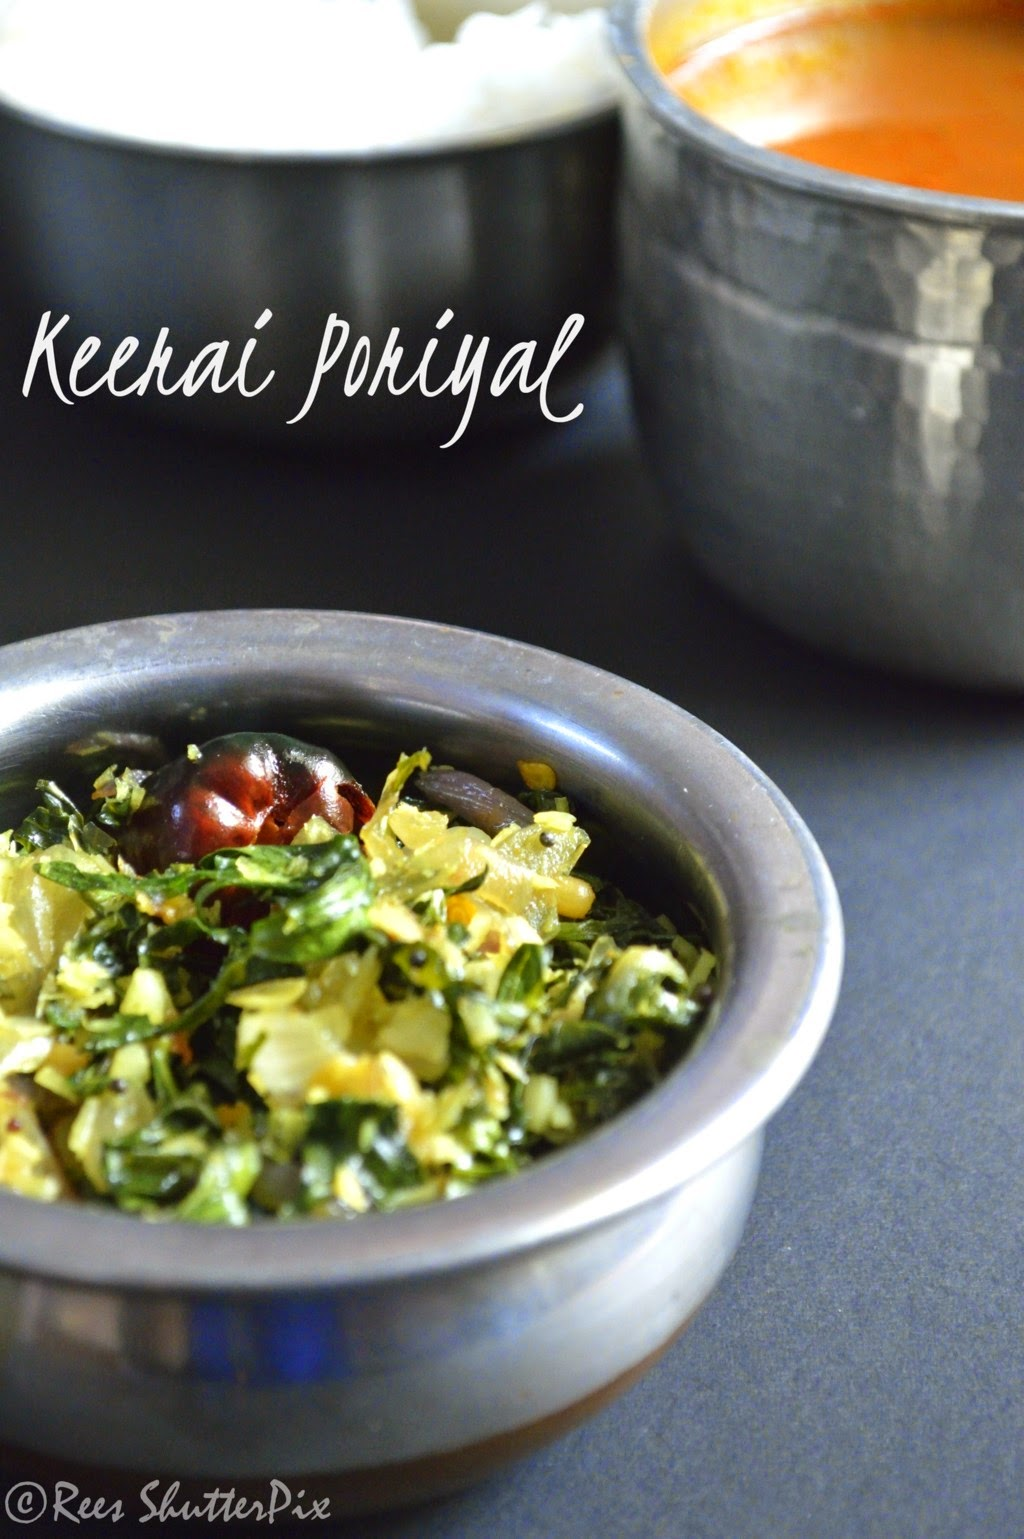 keerai, greens stir fry, side dish for rice, ponnagani keerai stir fry, grrens recipes, greens stir fry, keerai poriyal, keerai recipes, ponnagani keerai recipes, easy keerai recipes, keerai stir fry